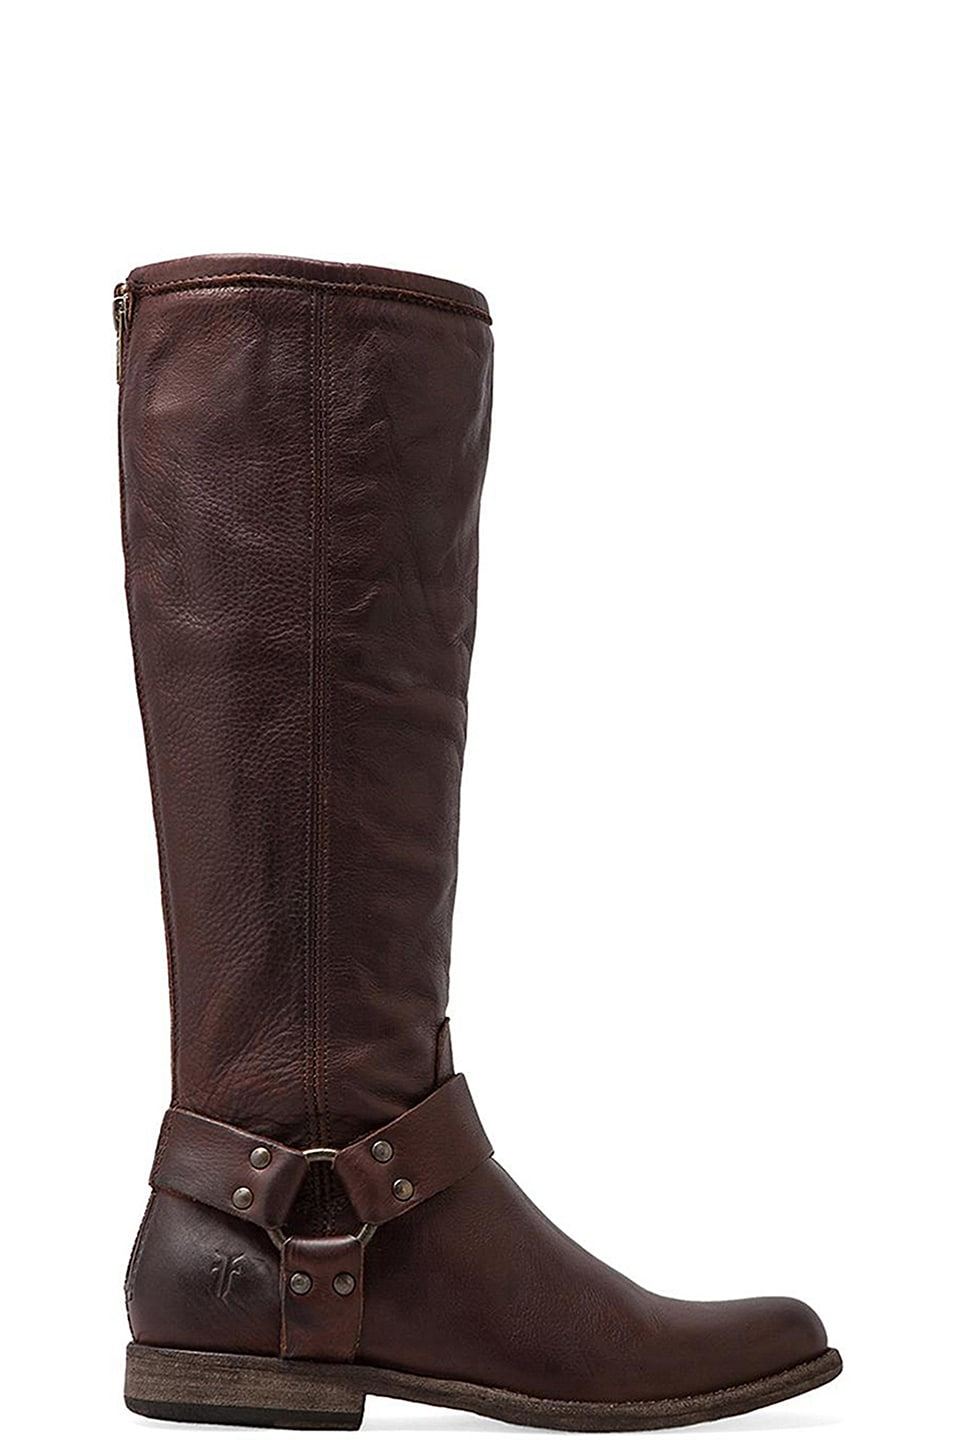 Frye Phillip Harness Tall Boot in Dark Brown